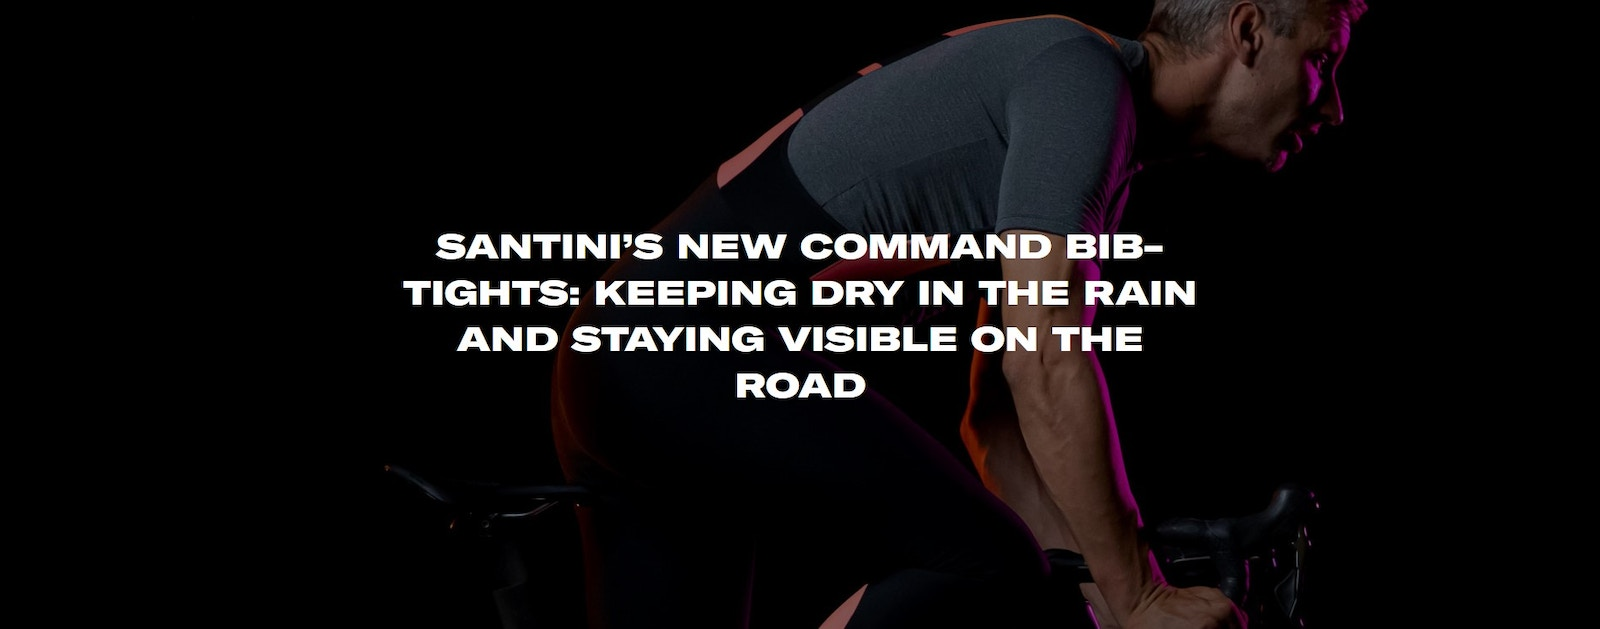 SANTINI'S NEW COMMAND BIB-TIGHTS: KEEPING DRY IN THE RAIN AND STAYING VISIBLE ON THE ROAD